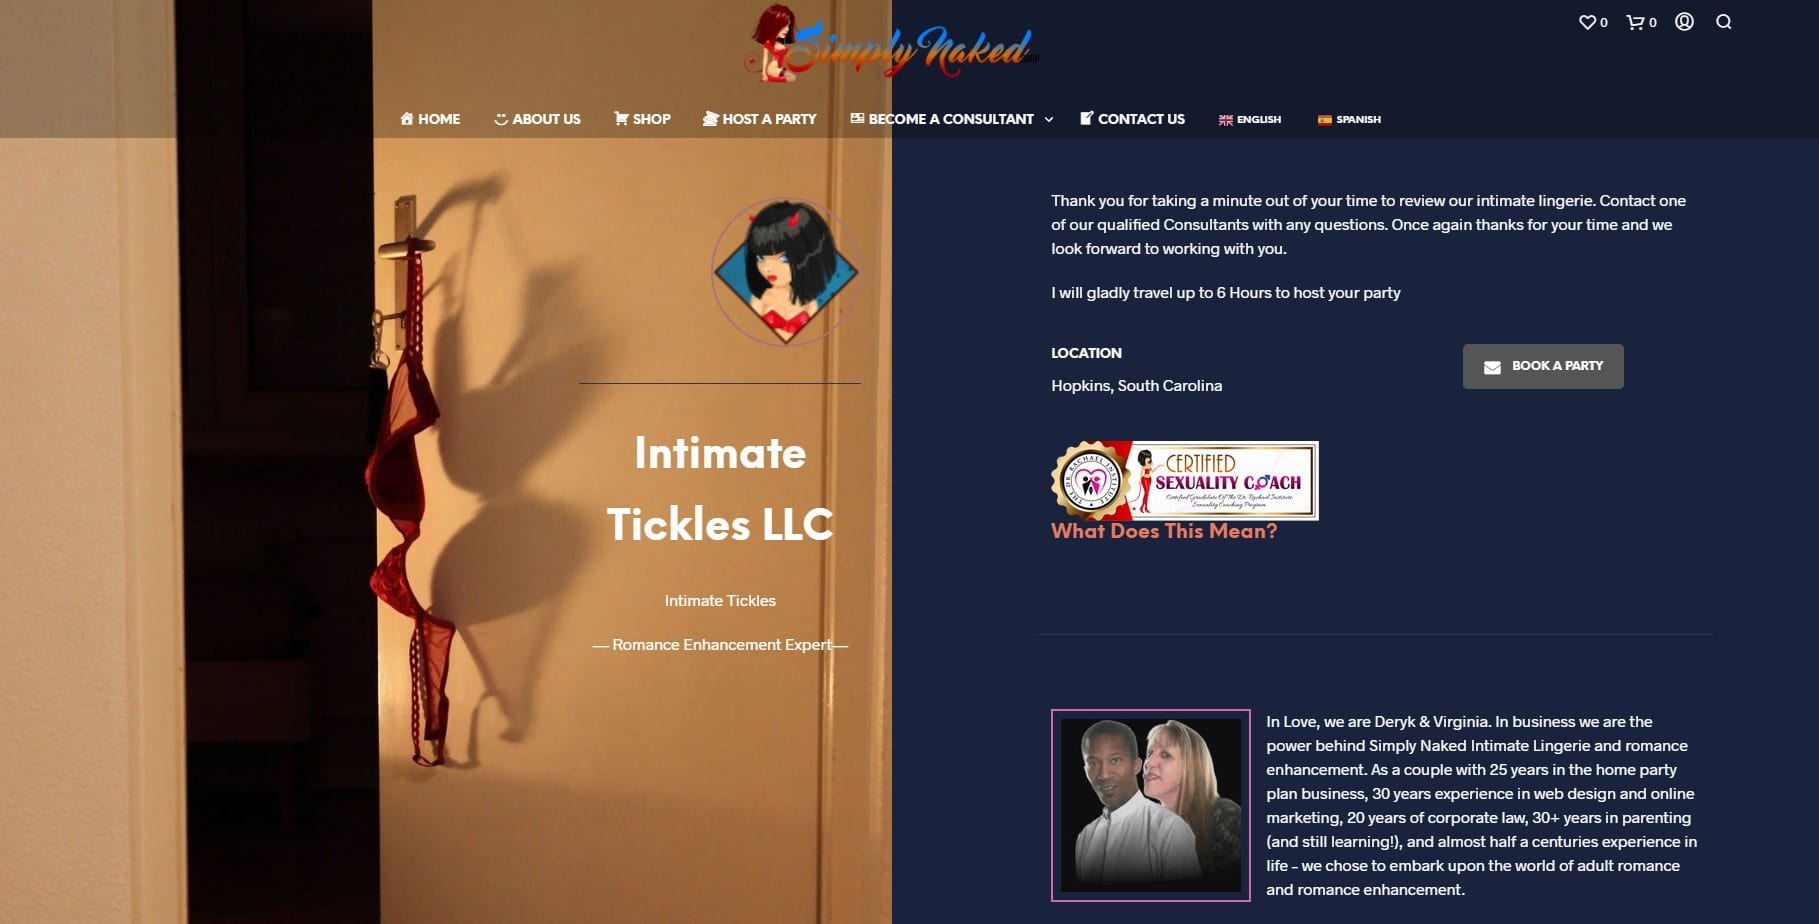 Lingerie Shopping Center With Sexuality Coach Certification Seal